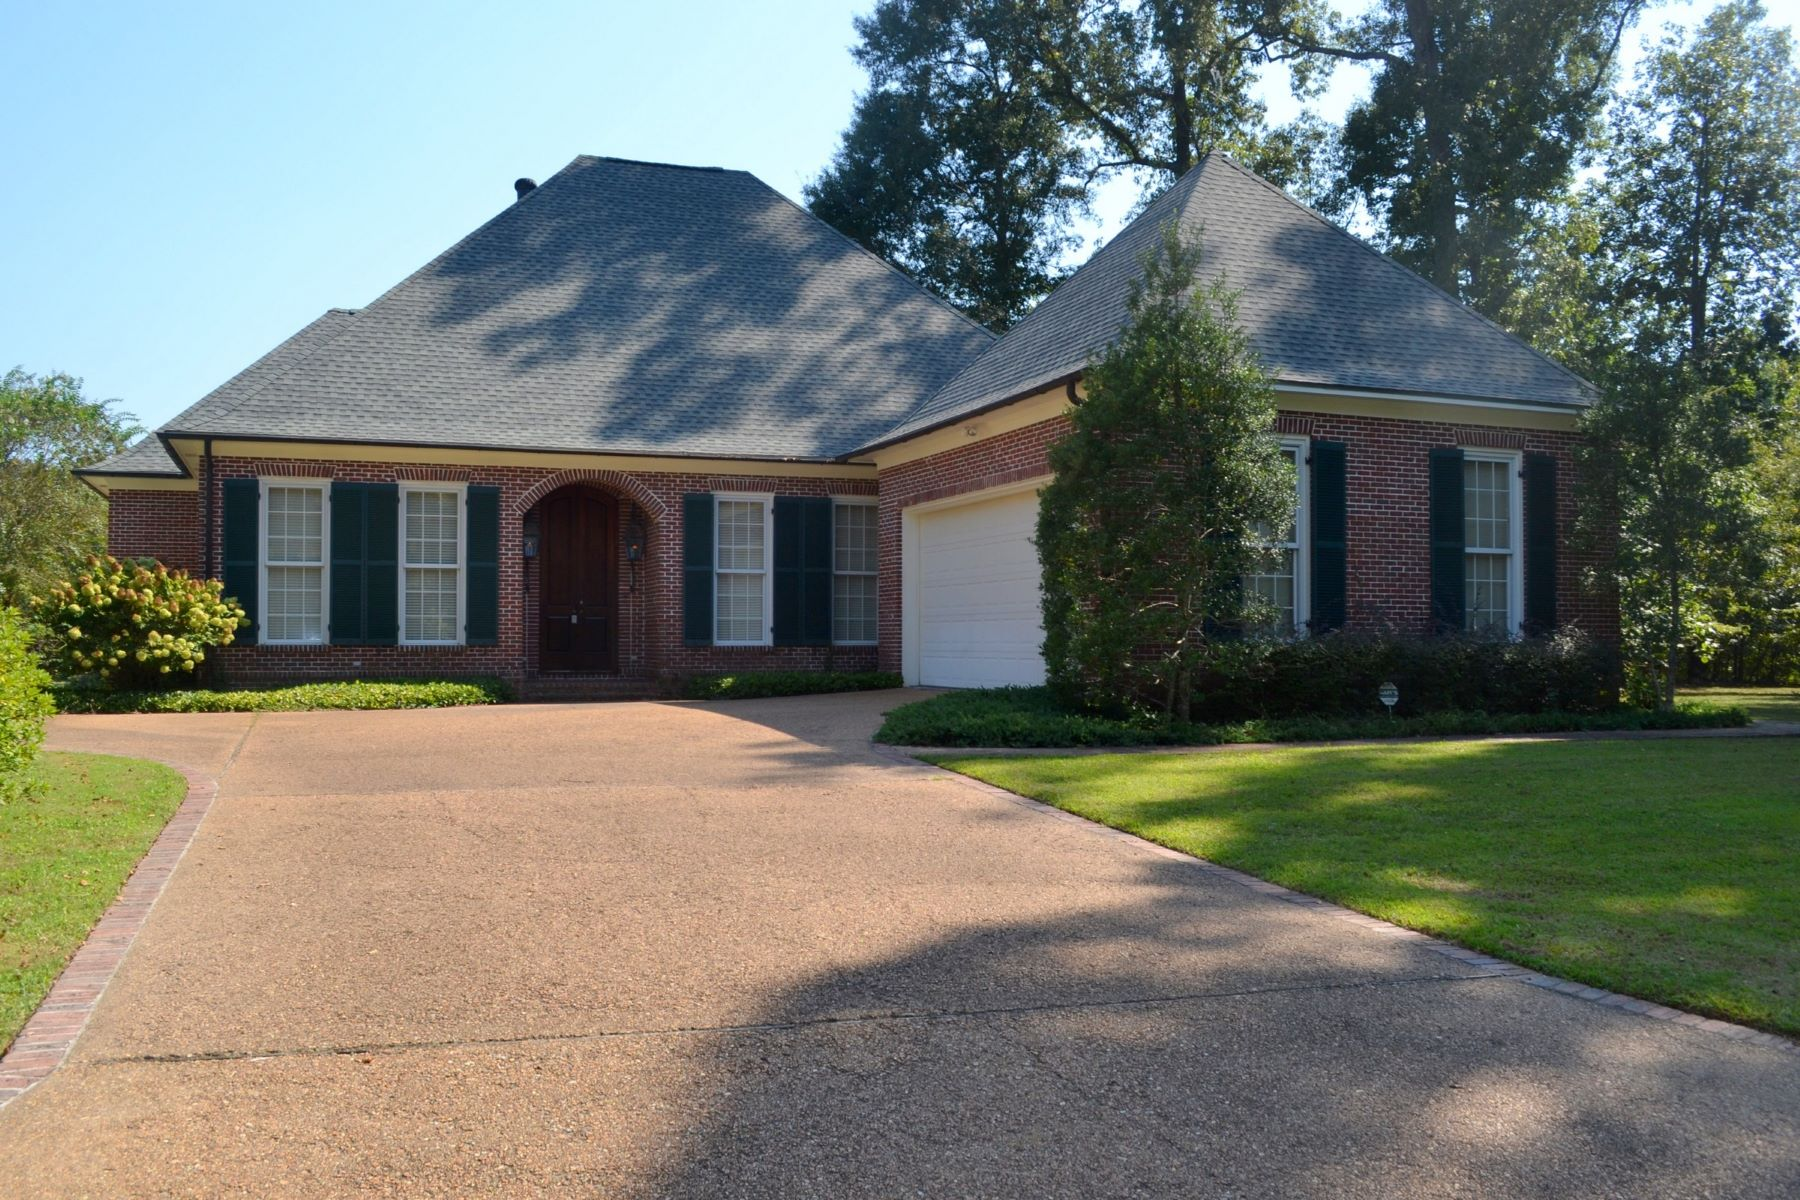 Single Family Homes for Sale at 17 Bluff Hills Place 17 Bluff Hills Pl Natchez, Mississippi 39120 United States